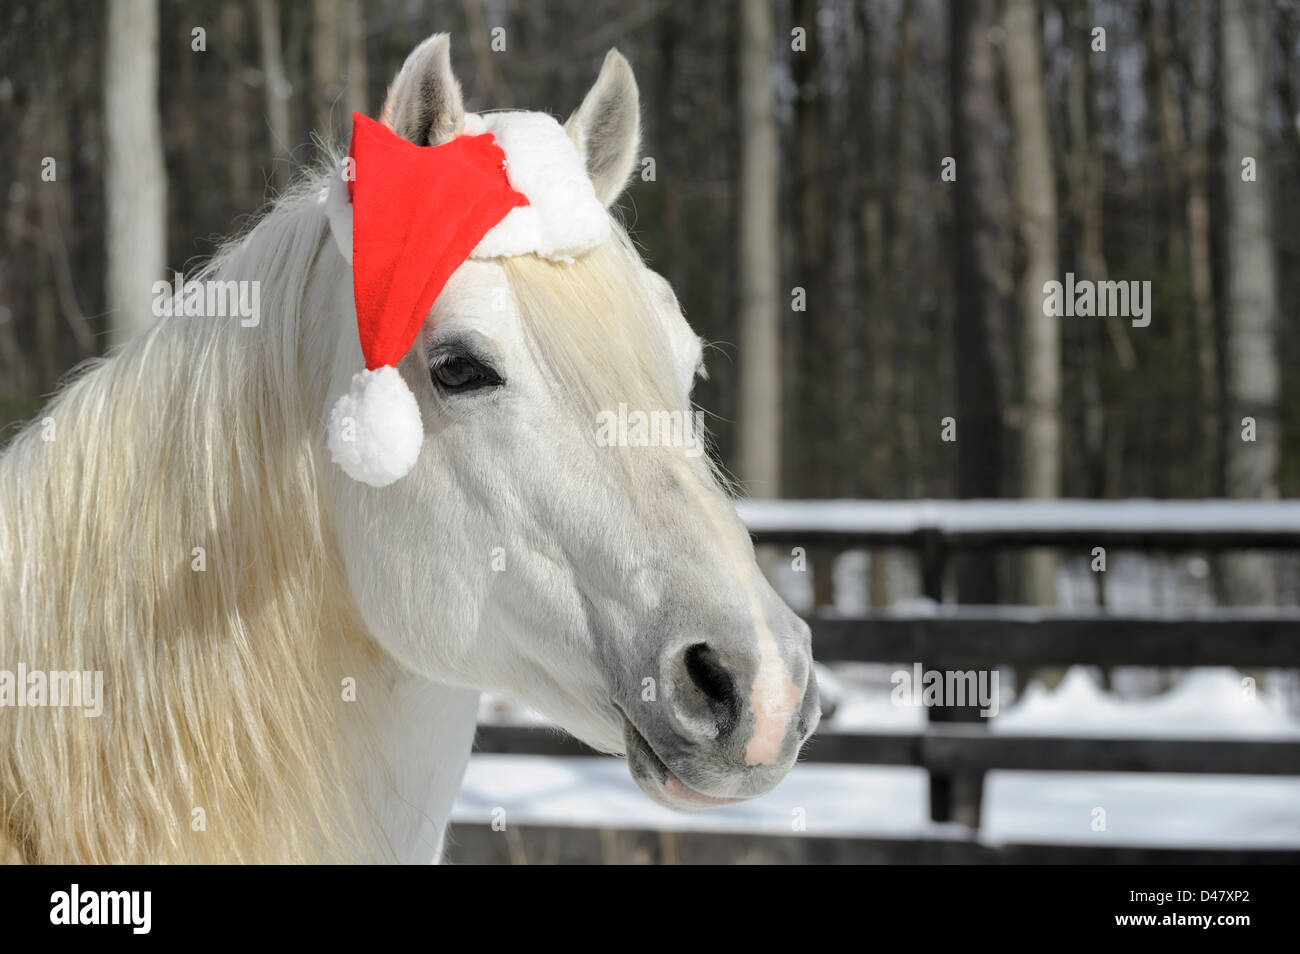 White Horse Wearing Santa Christmas Hat Head Shot With Copy Space Stock Photo Alamy